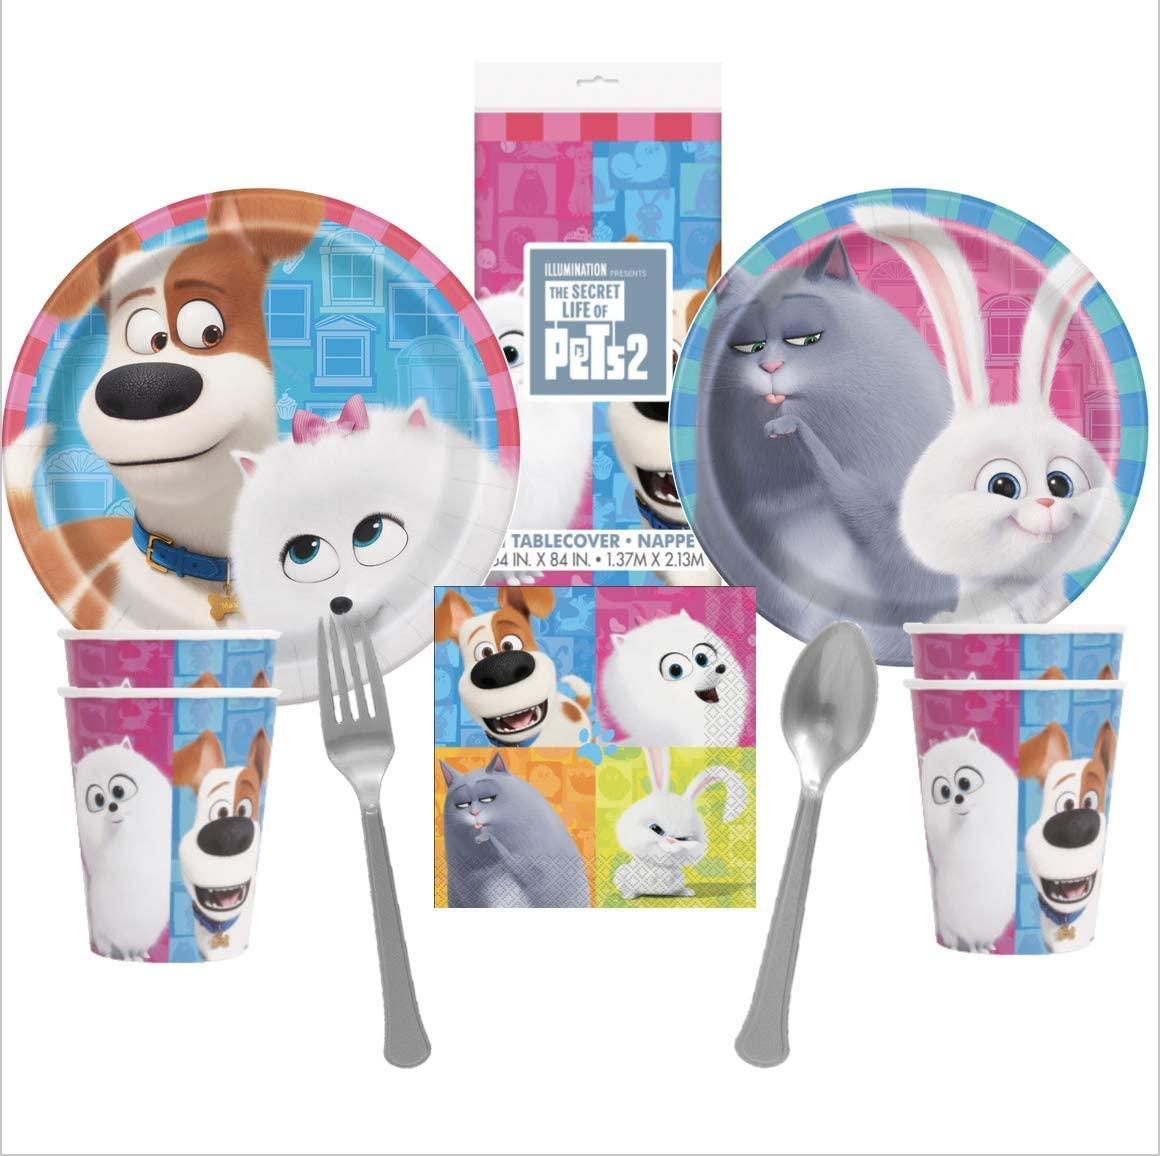 Secret Life of Pets Part 2 NEW Birthday Party Supplies Pack for 16 Guests Plates Cups Napkins Table Cover Premium Cutlery